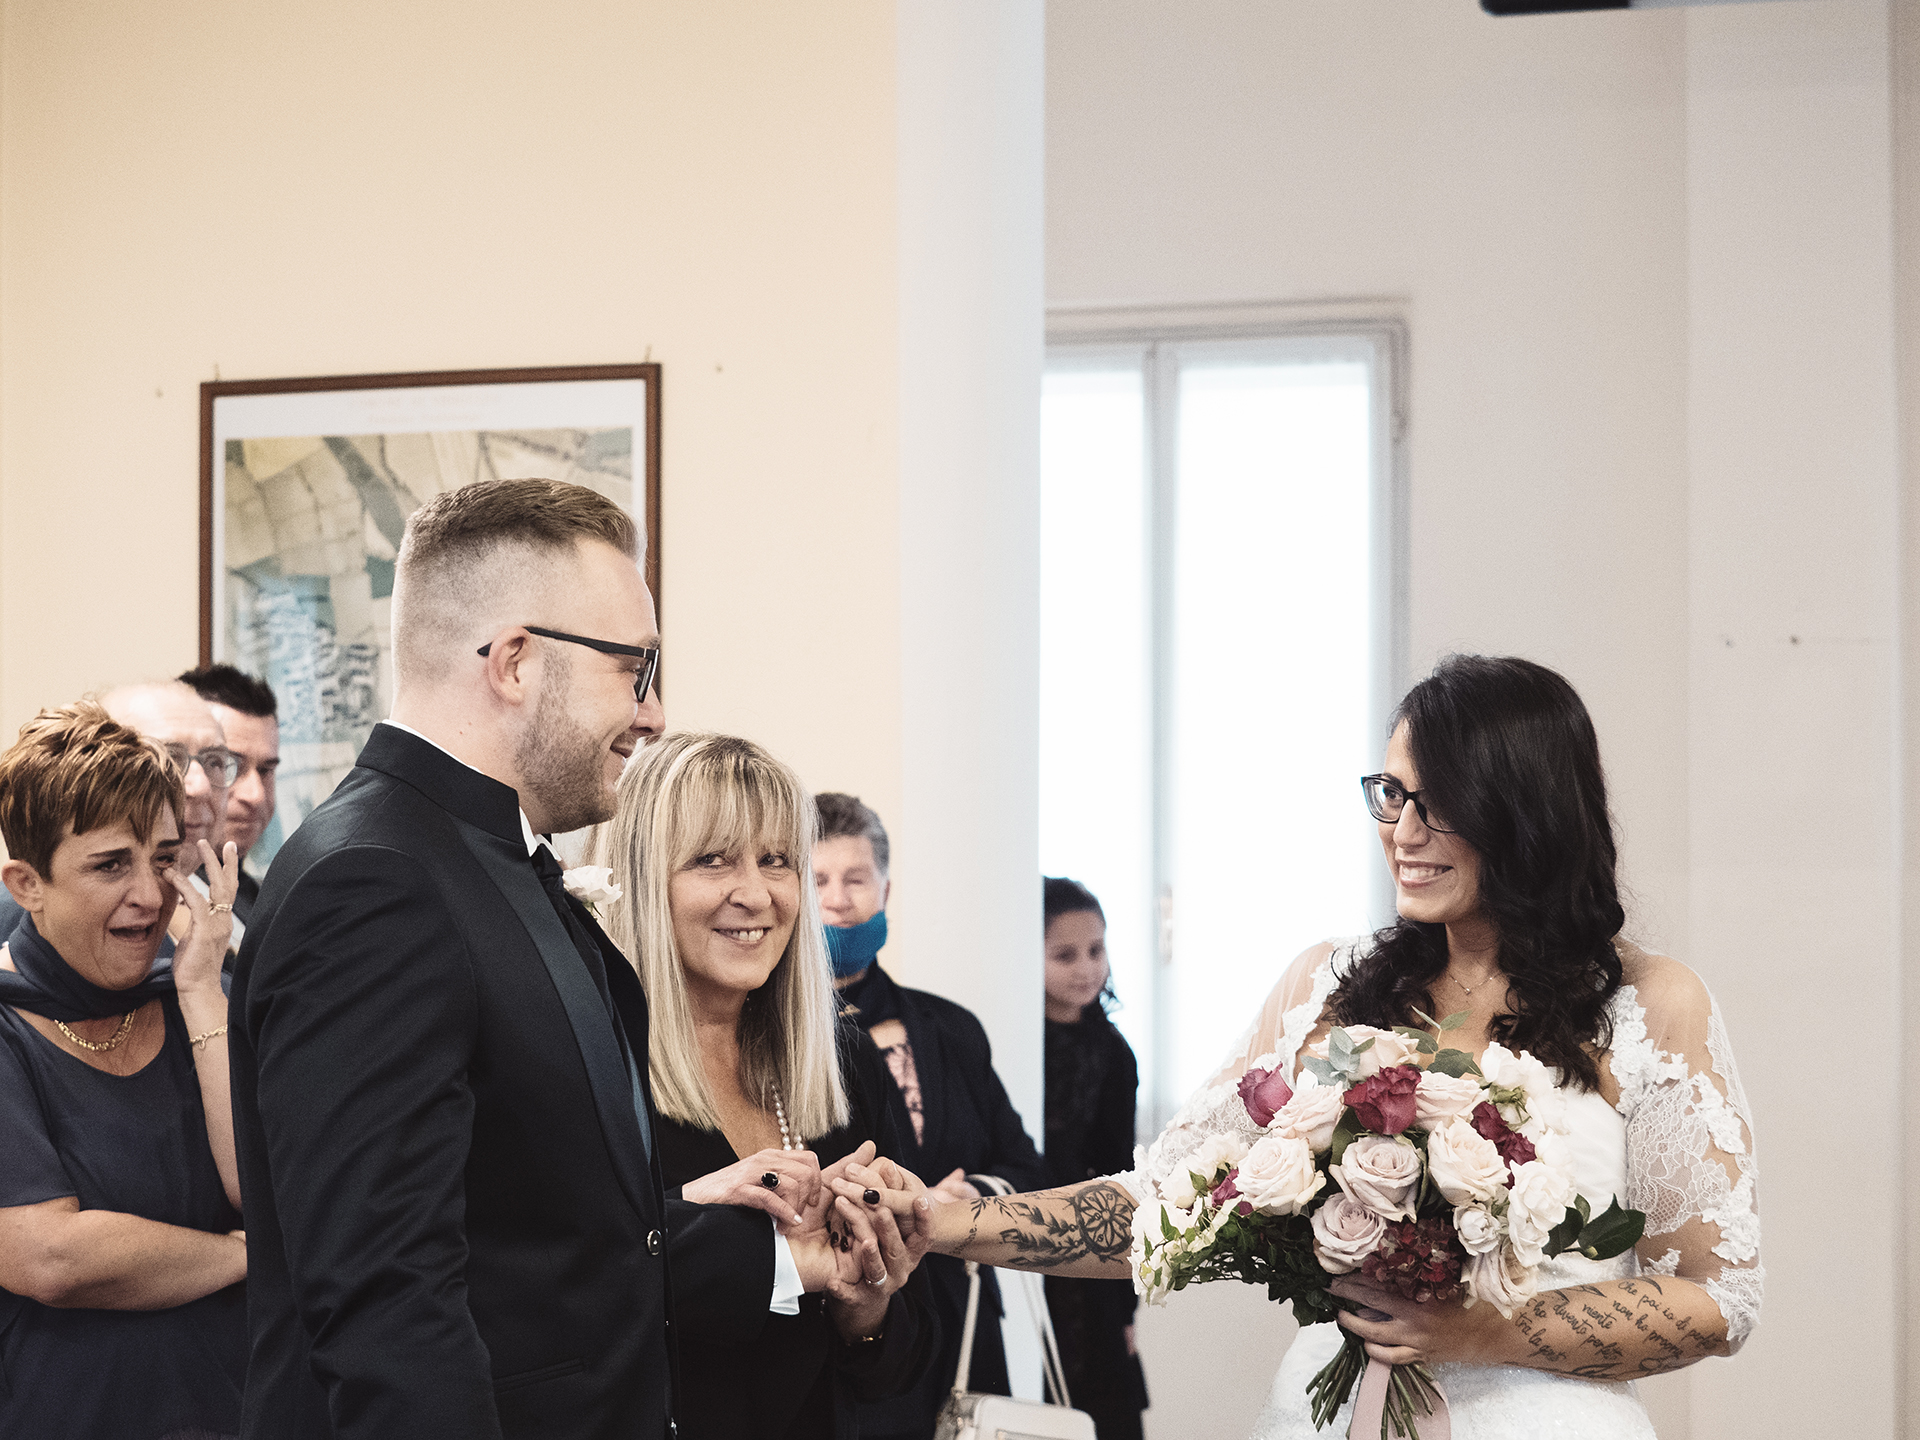 Italy Destination Wedding Photographer at the Civil Hall | the mother of the bride gives her daughter away